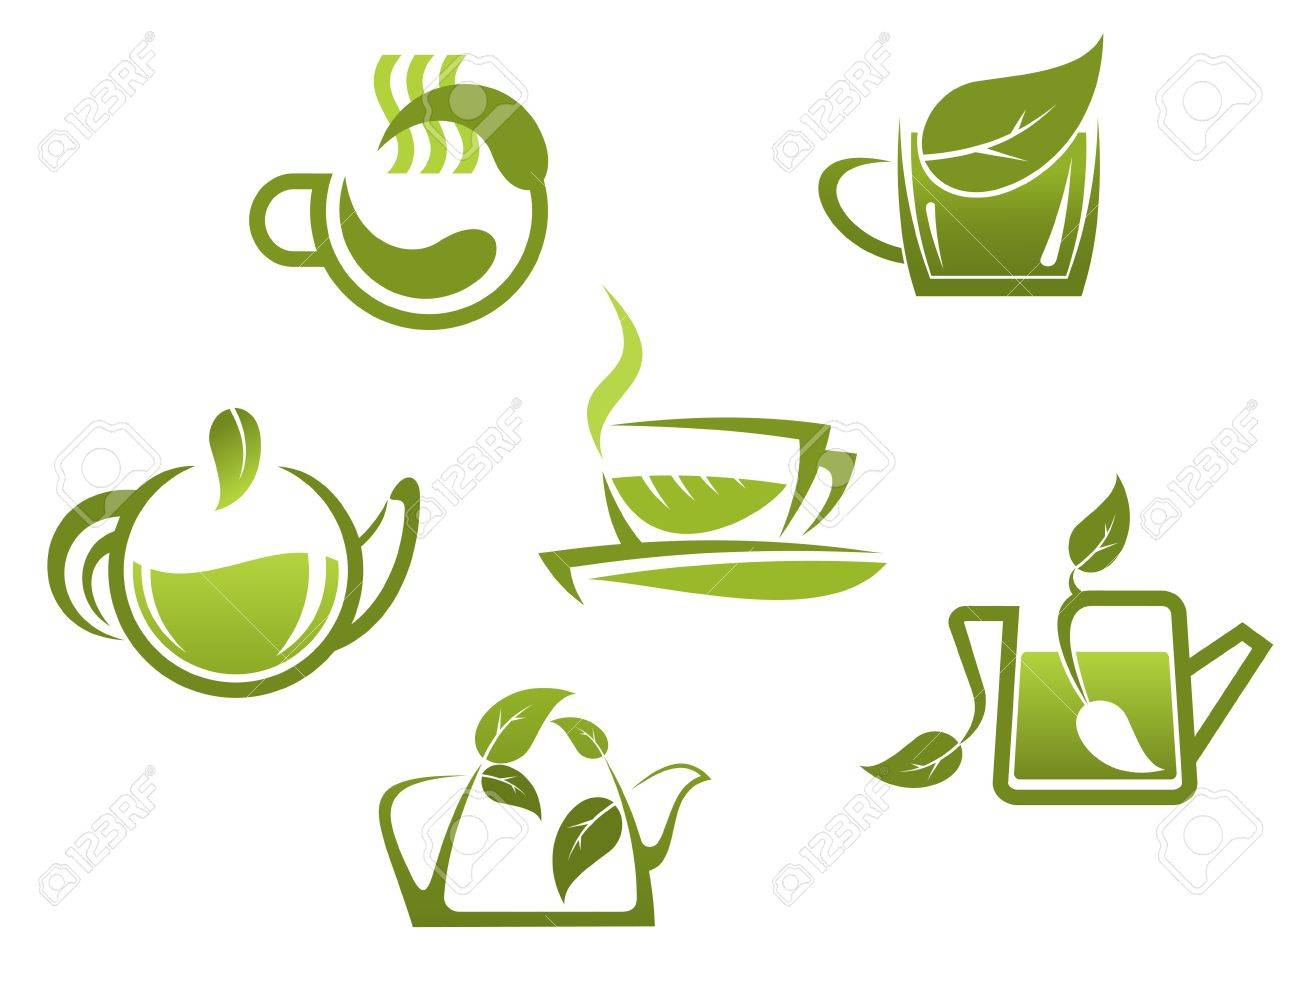 green tea symbols and icons for fast food or cafe design royalty